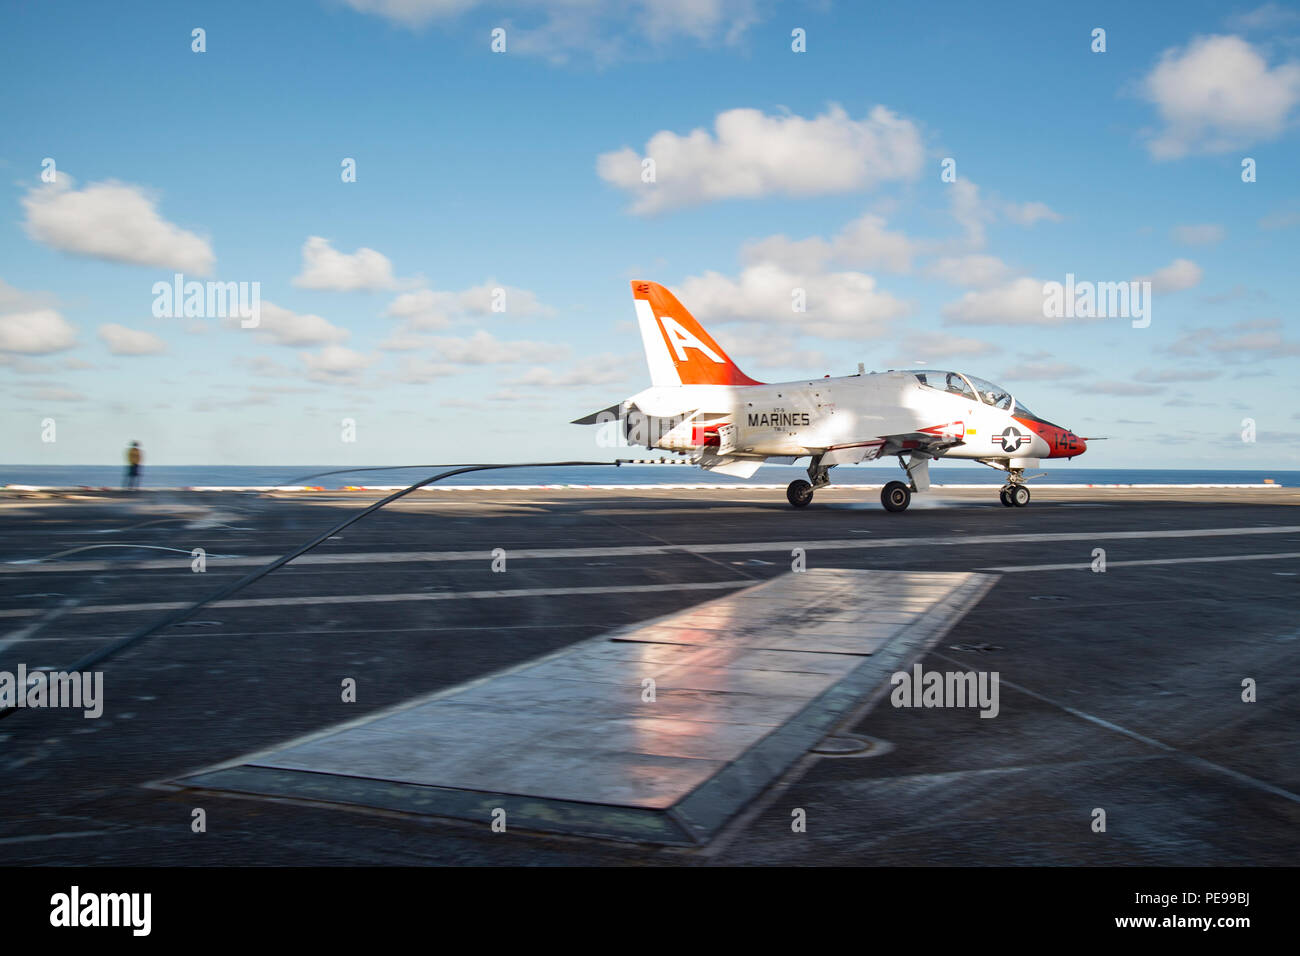 151106-N-KK394-083 ATLANTIC OCEAN (Nov. 6, 2015) – A T-45C Goshawk attached to Training Wing (CTW) 2 makes an arrested landing on the flight deck of the aircraft carrier USS Dwight D. Eisenhower (CVN 69). Dwight D. Eisenhower is underway conducting carrier qualifications. (U.S. Navy photo by Mass Communication Specialist Seaman Anderson W. Branch/Released) - Stock Image